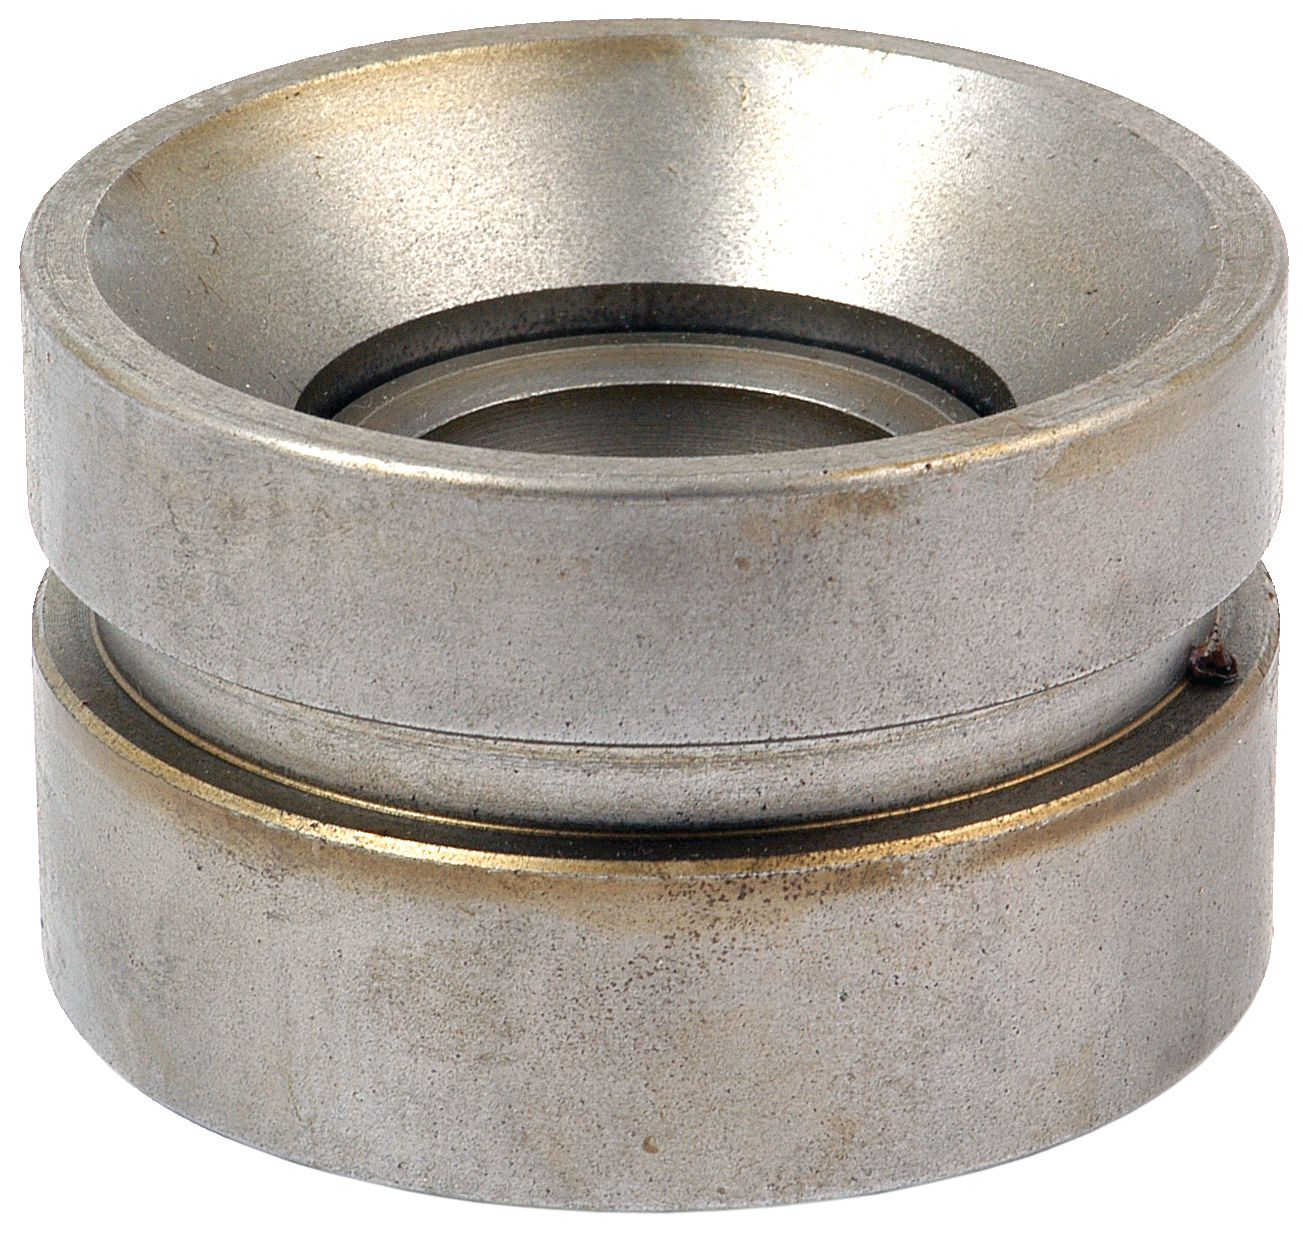 LONG TRACTOR HYDRAULIC PISTON